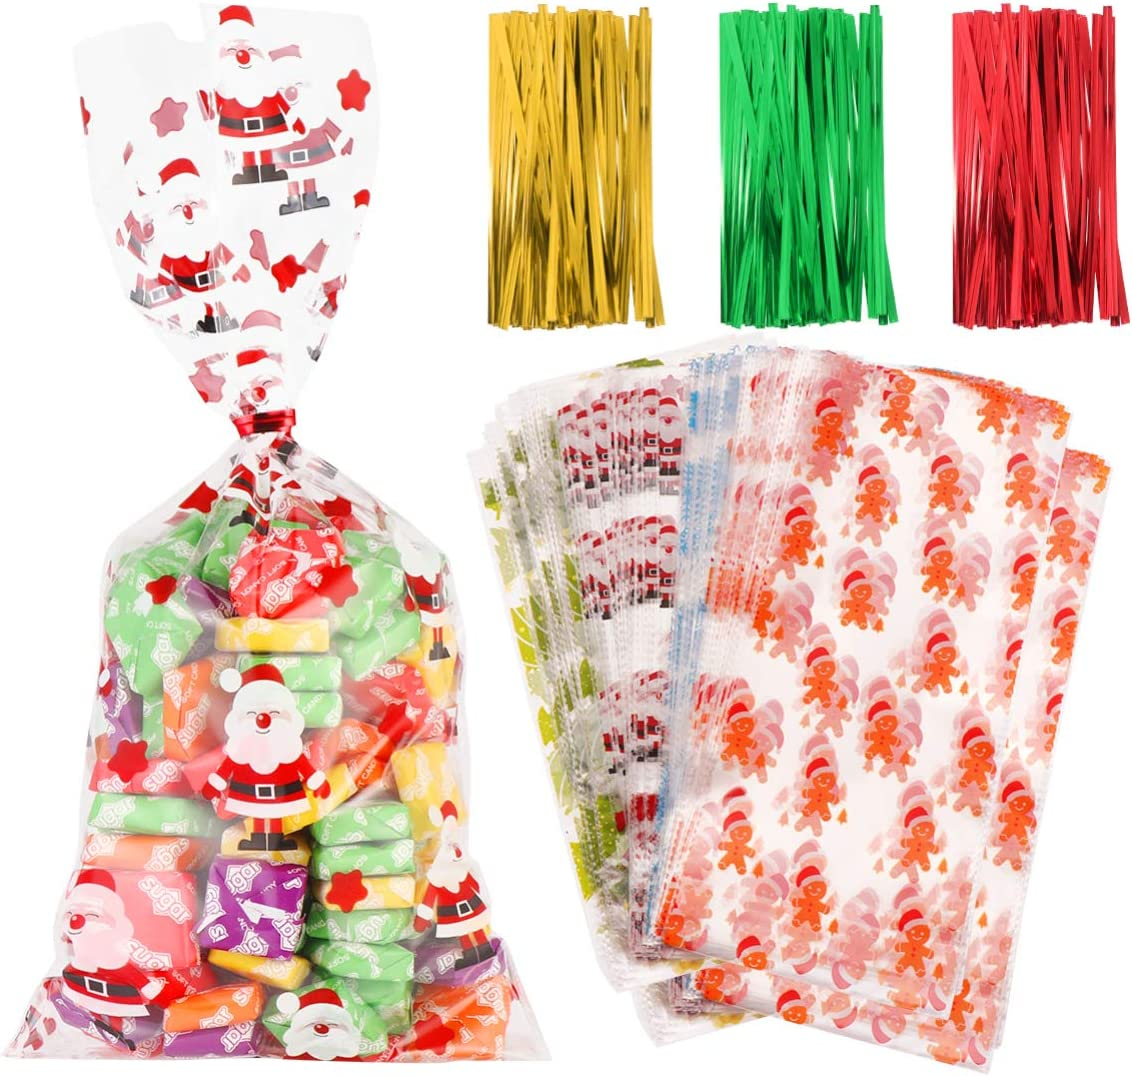 Small Merry Penguins Christmas 7x3x2 Cello Cellophane Party Treat Food Snack Bags Free Shipping!